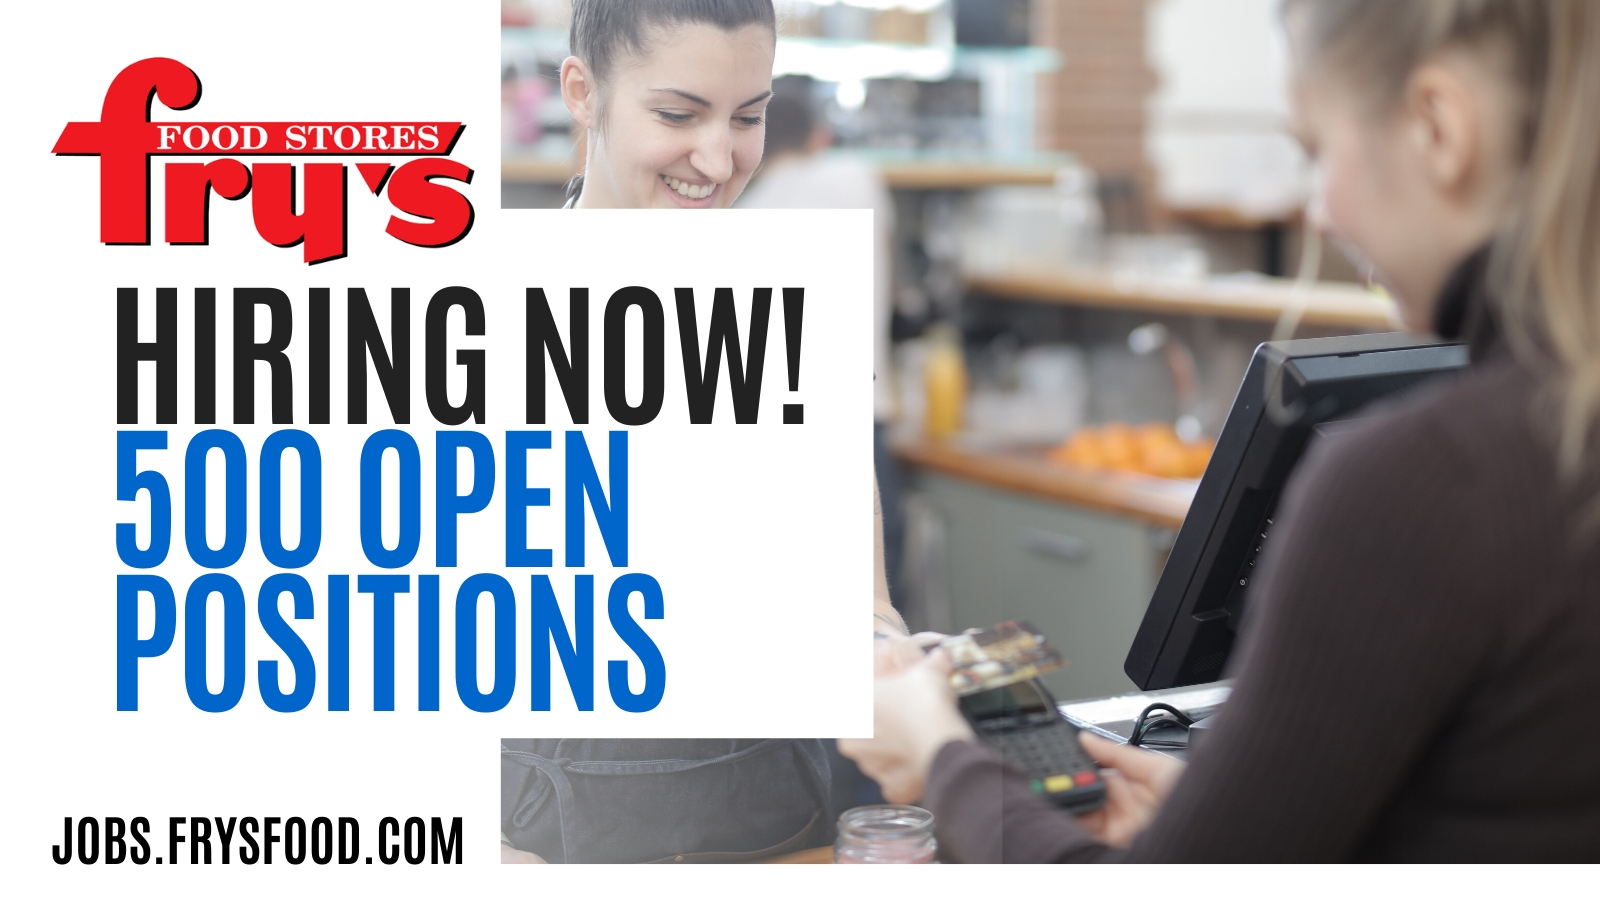 Fry's Food Stores Hiring